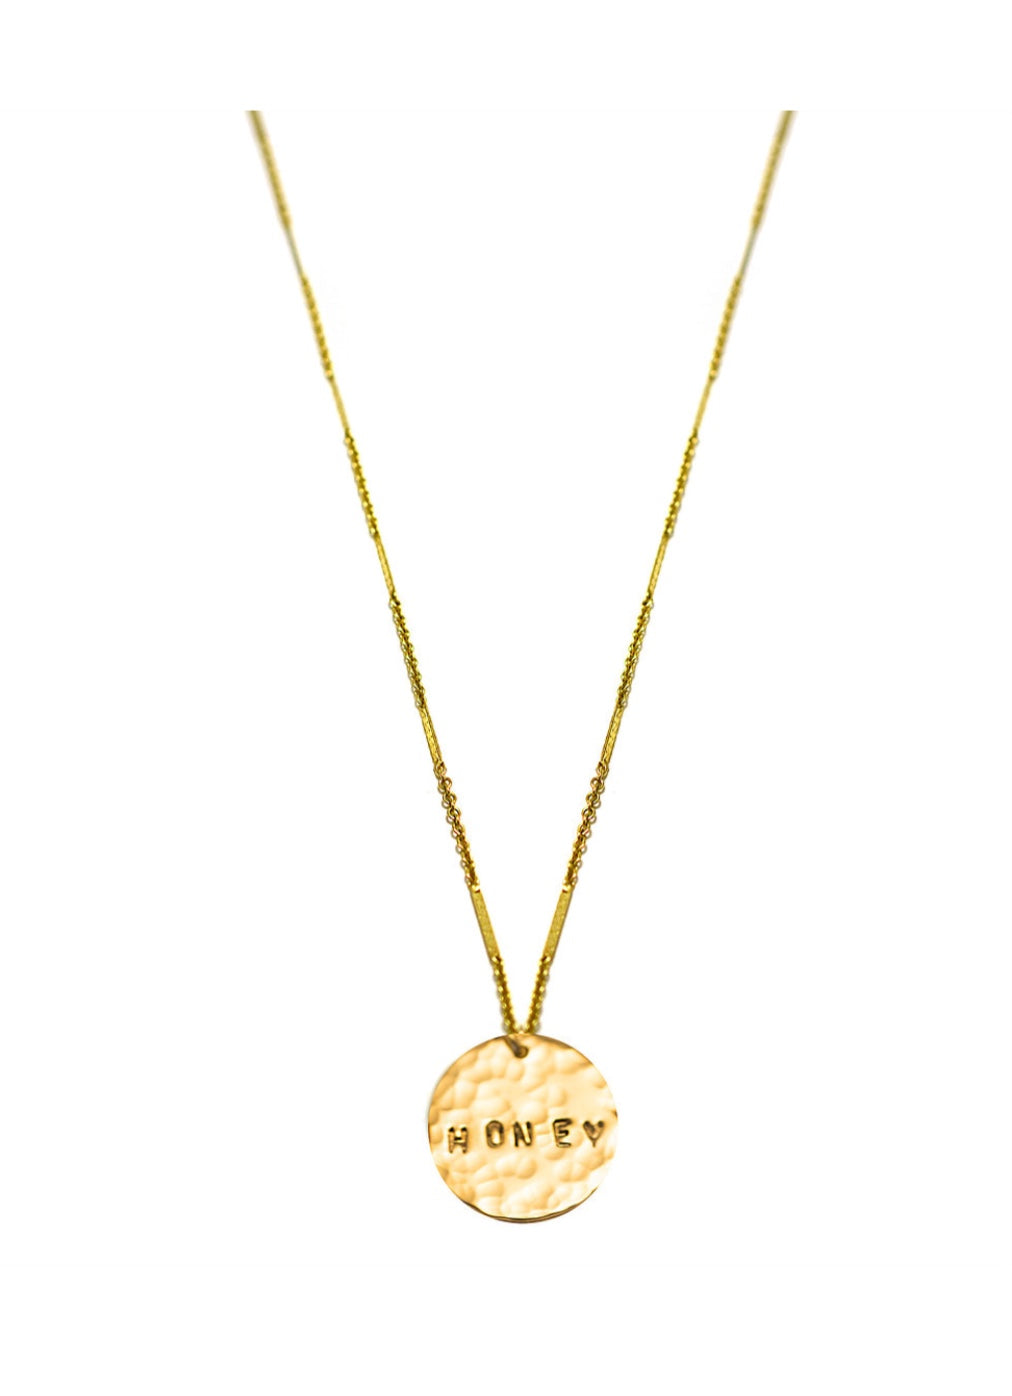 Honey Coin Necklace